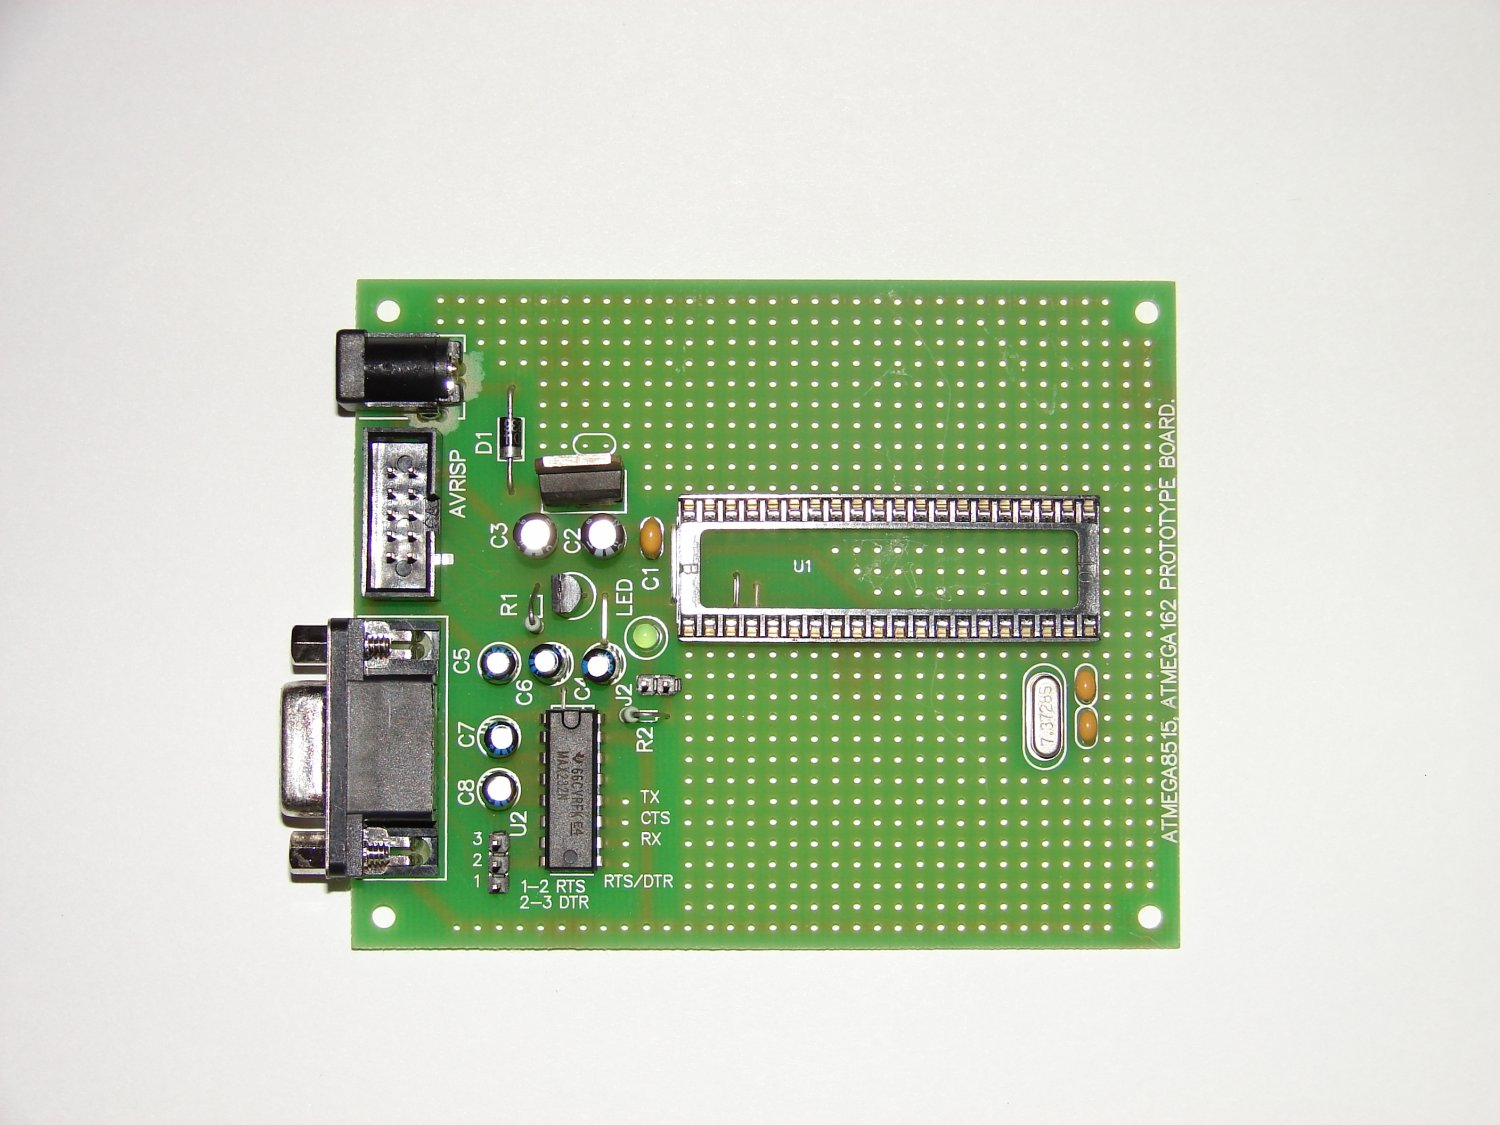 ATMEL AVR PROTOTYPE BOARD ATMega8515 with components